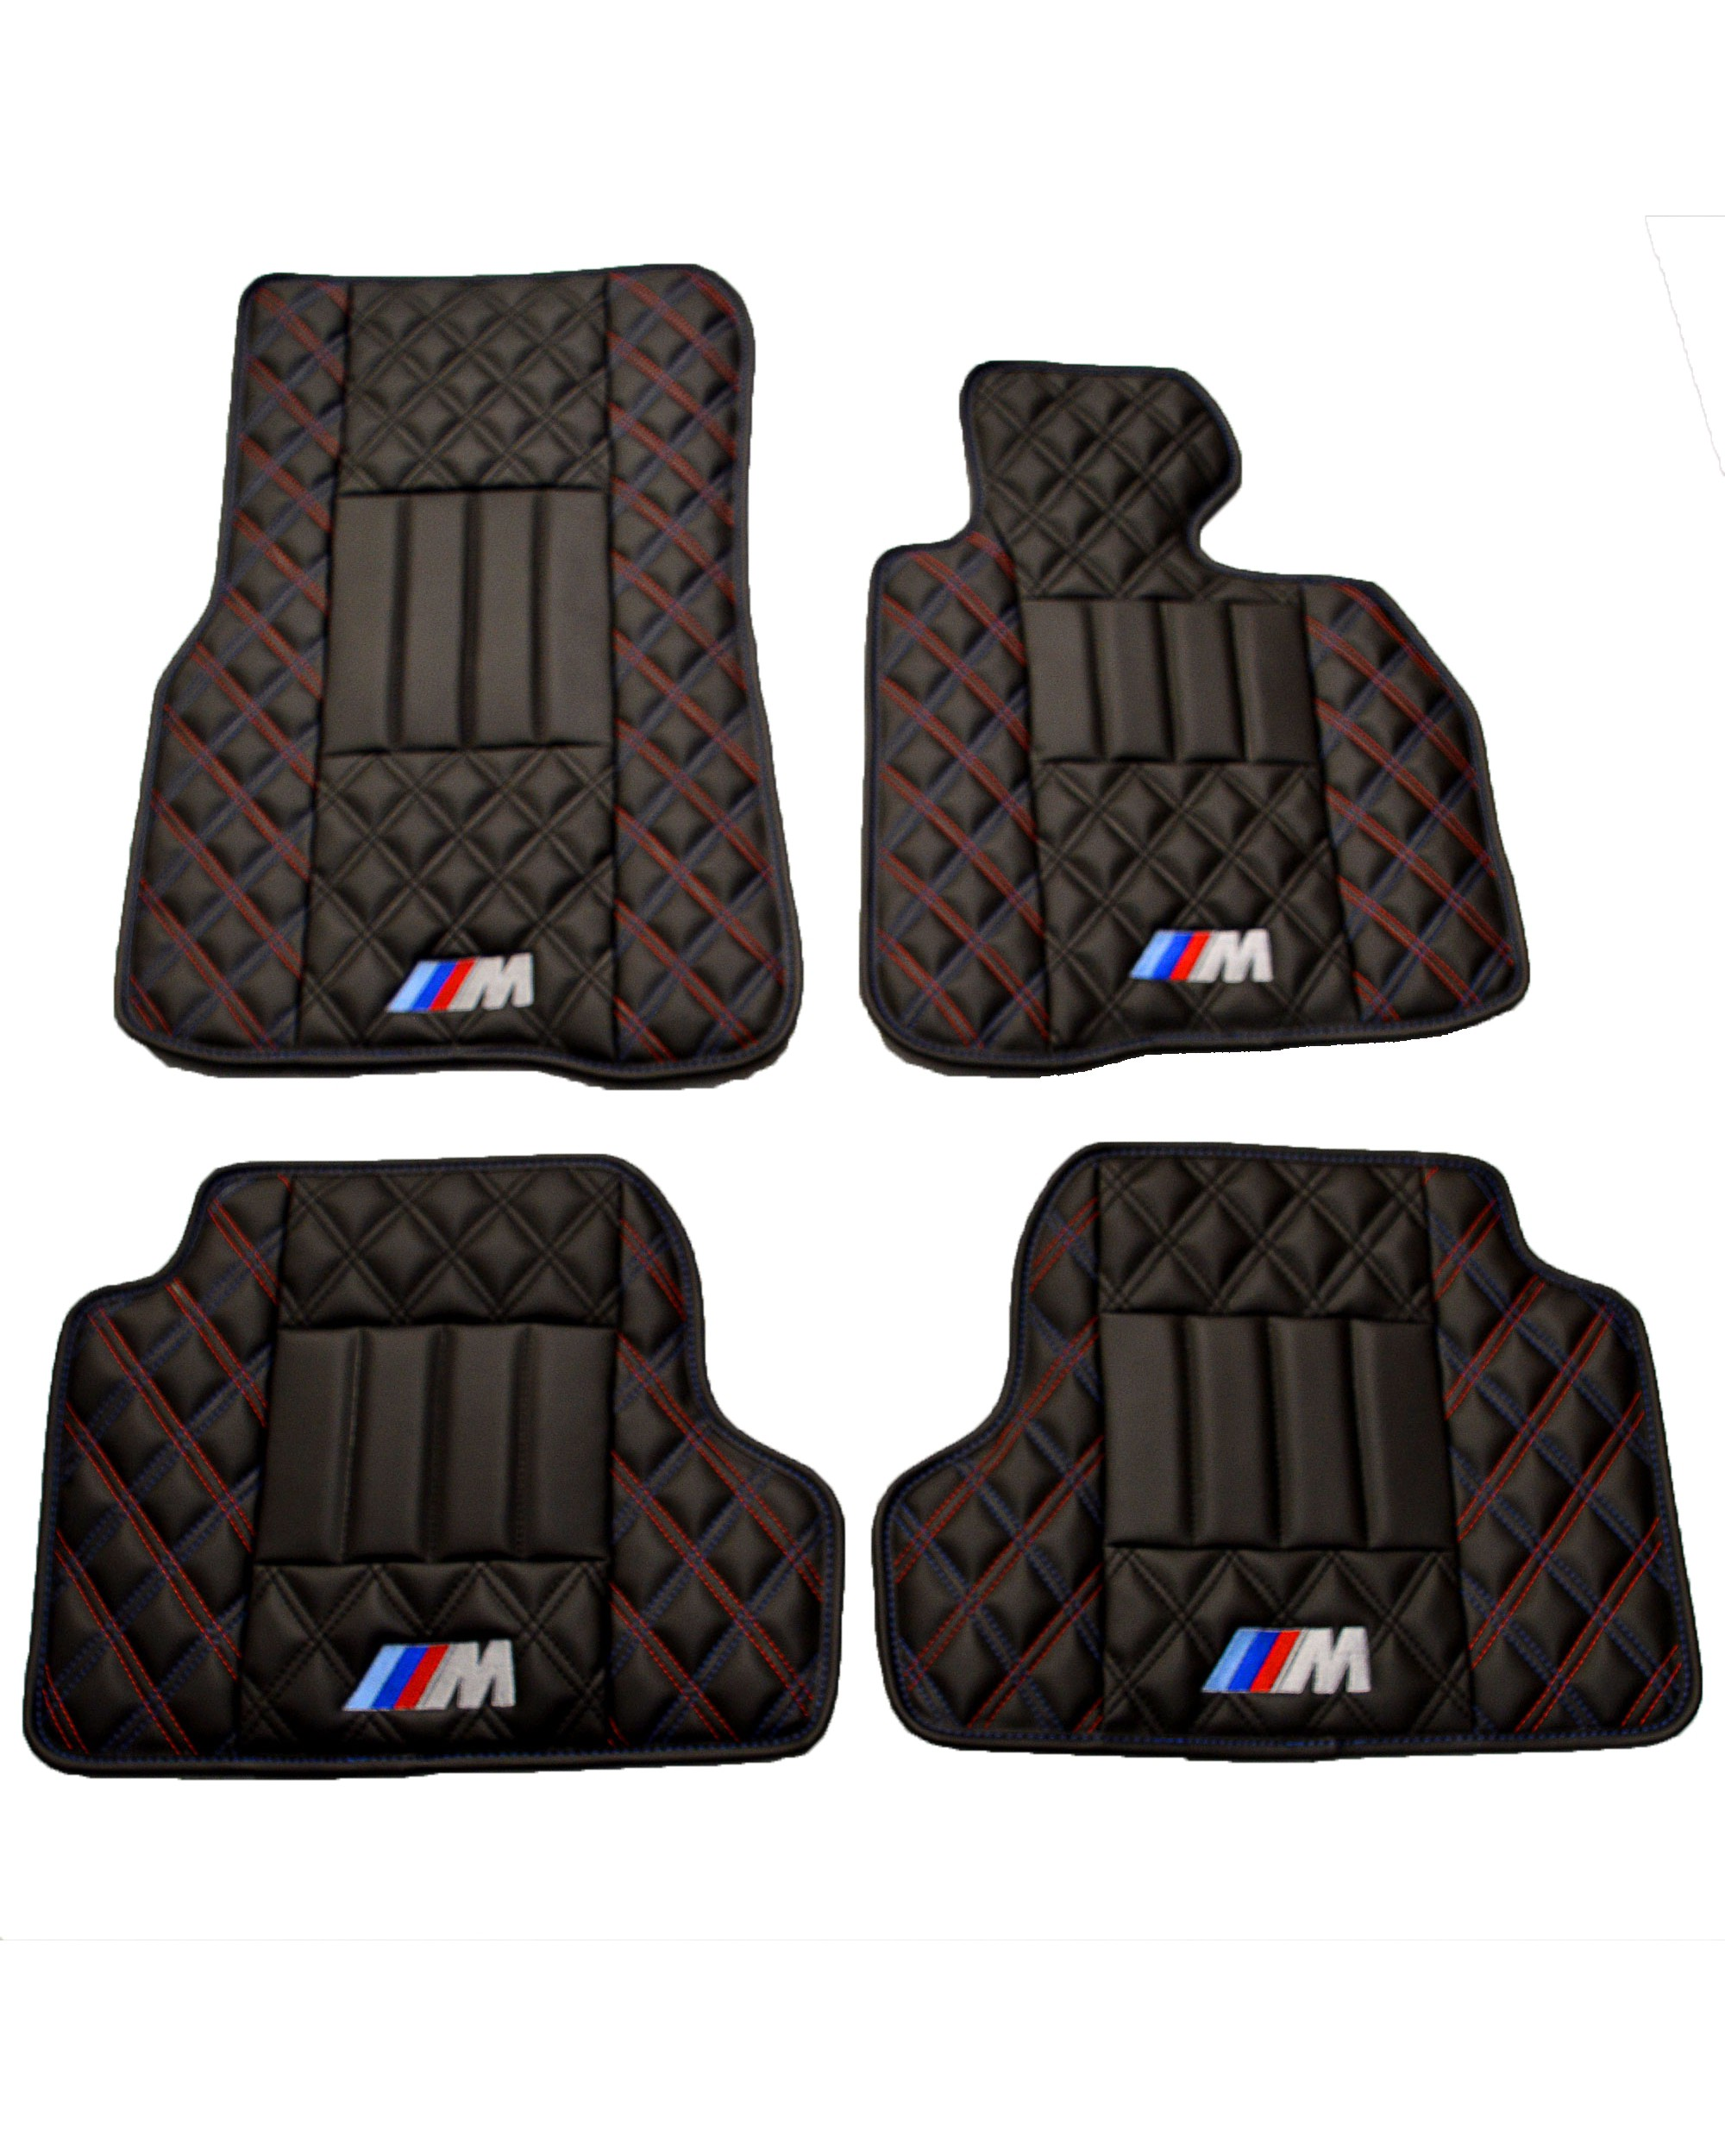 BMW 4 Series M Sport Luxury Floor Mats - Black Quilted Diamond Diamonds